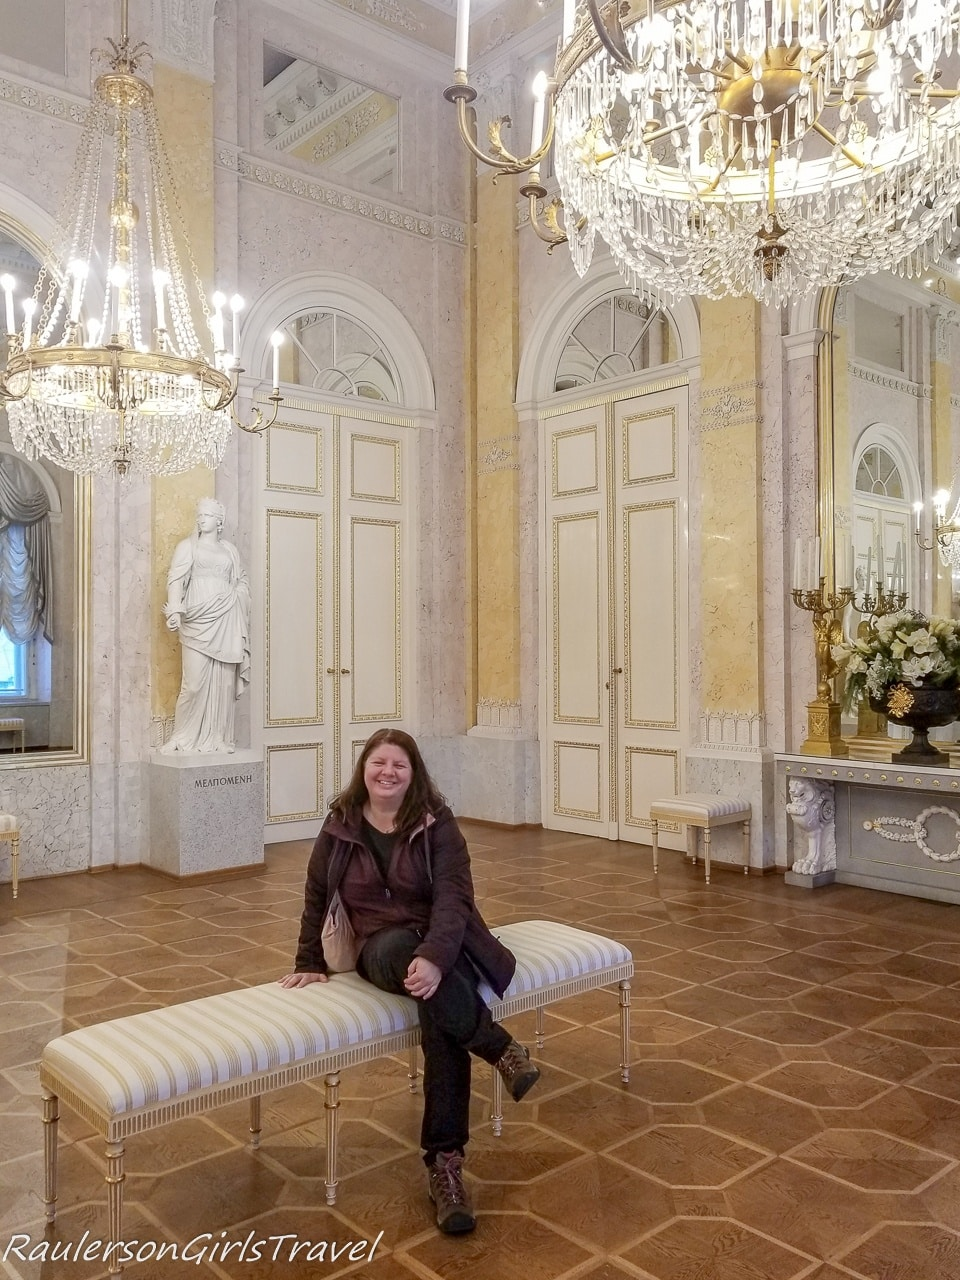 Heather in Habsburg state rooms at Albertina Museum